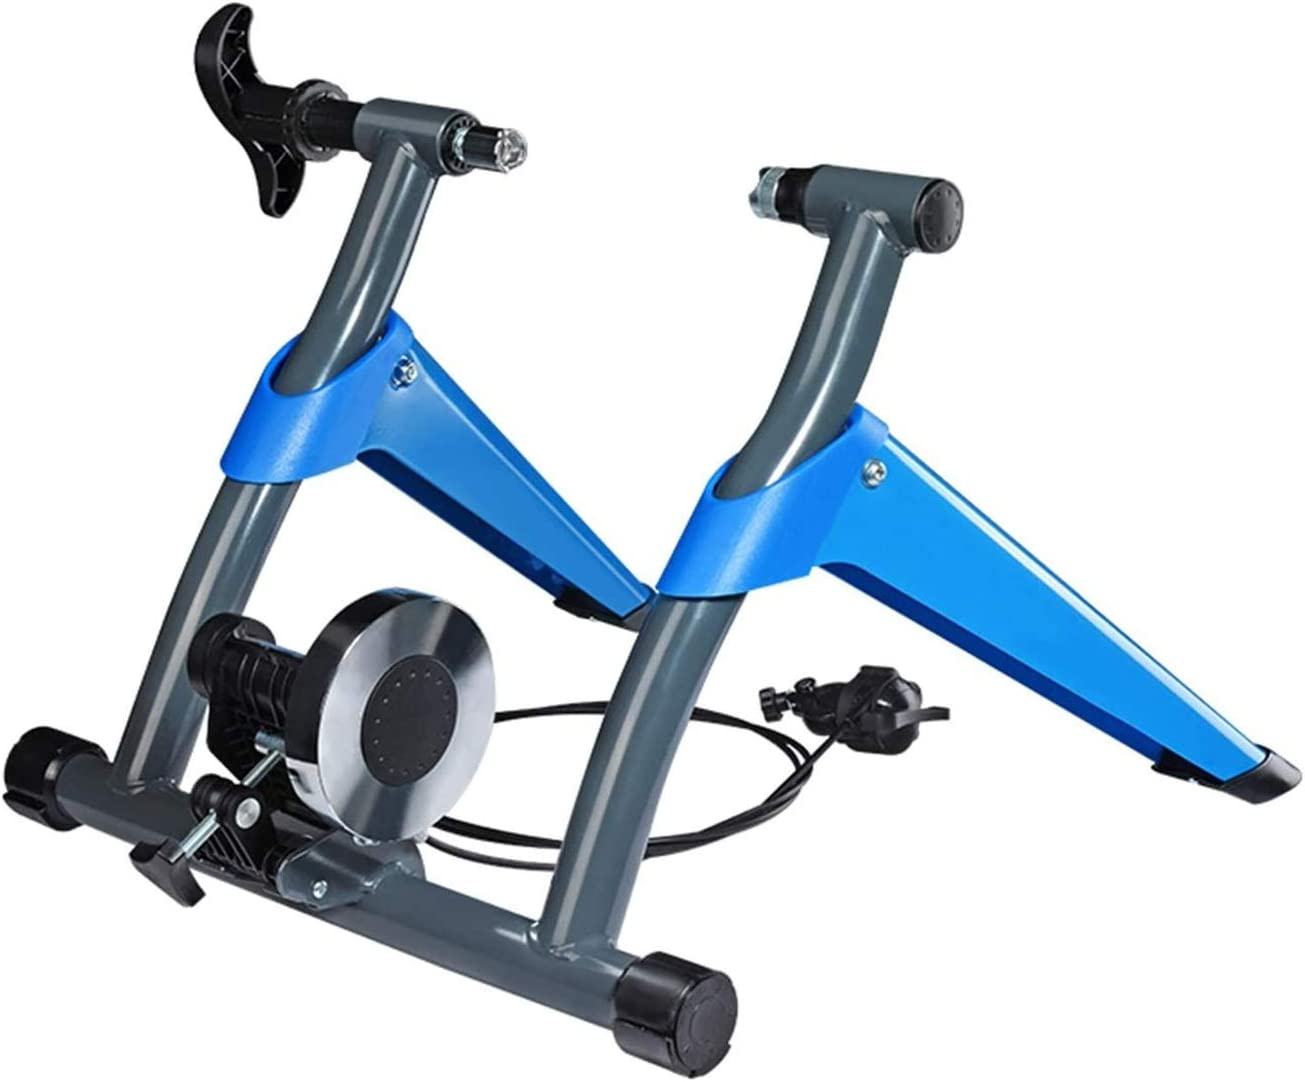 DSWHM Bike Trainer Stand 100% Free Shipping New quality warranty 8 Resistance Setting